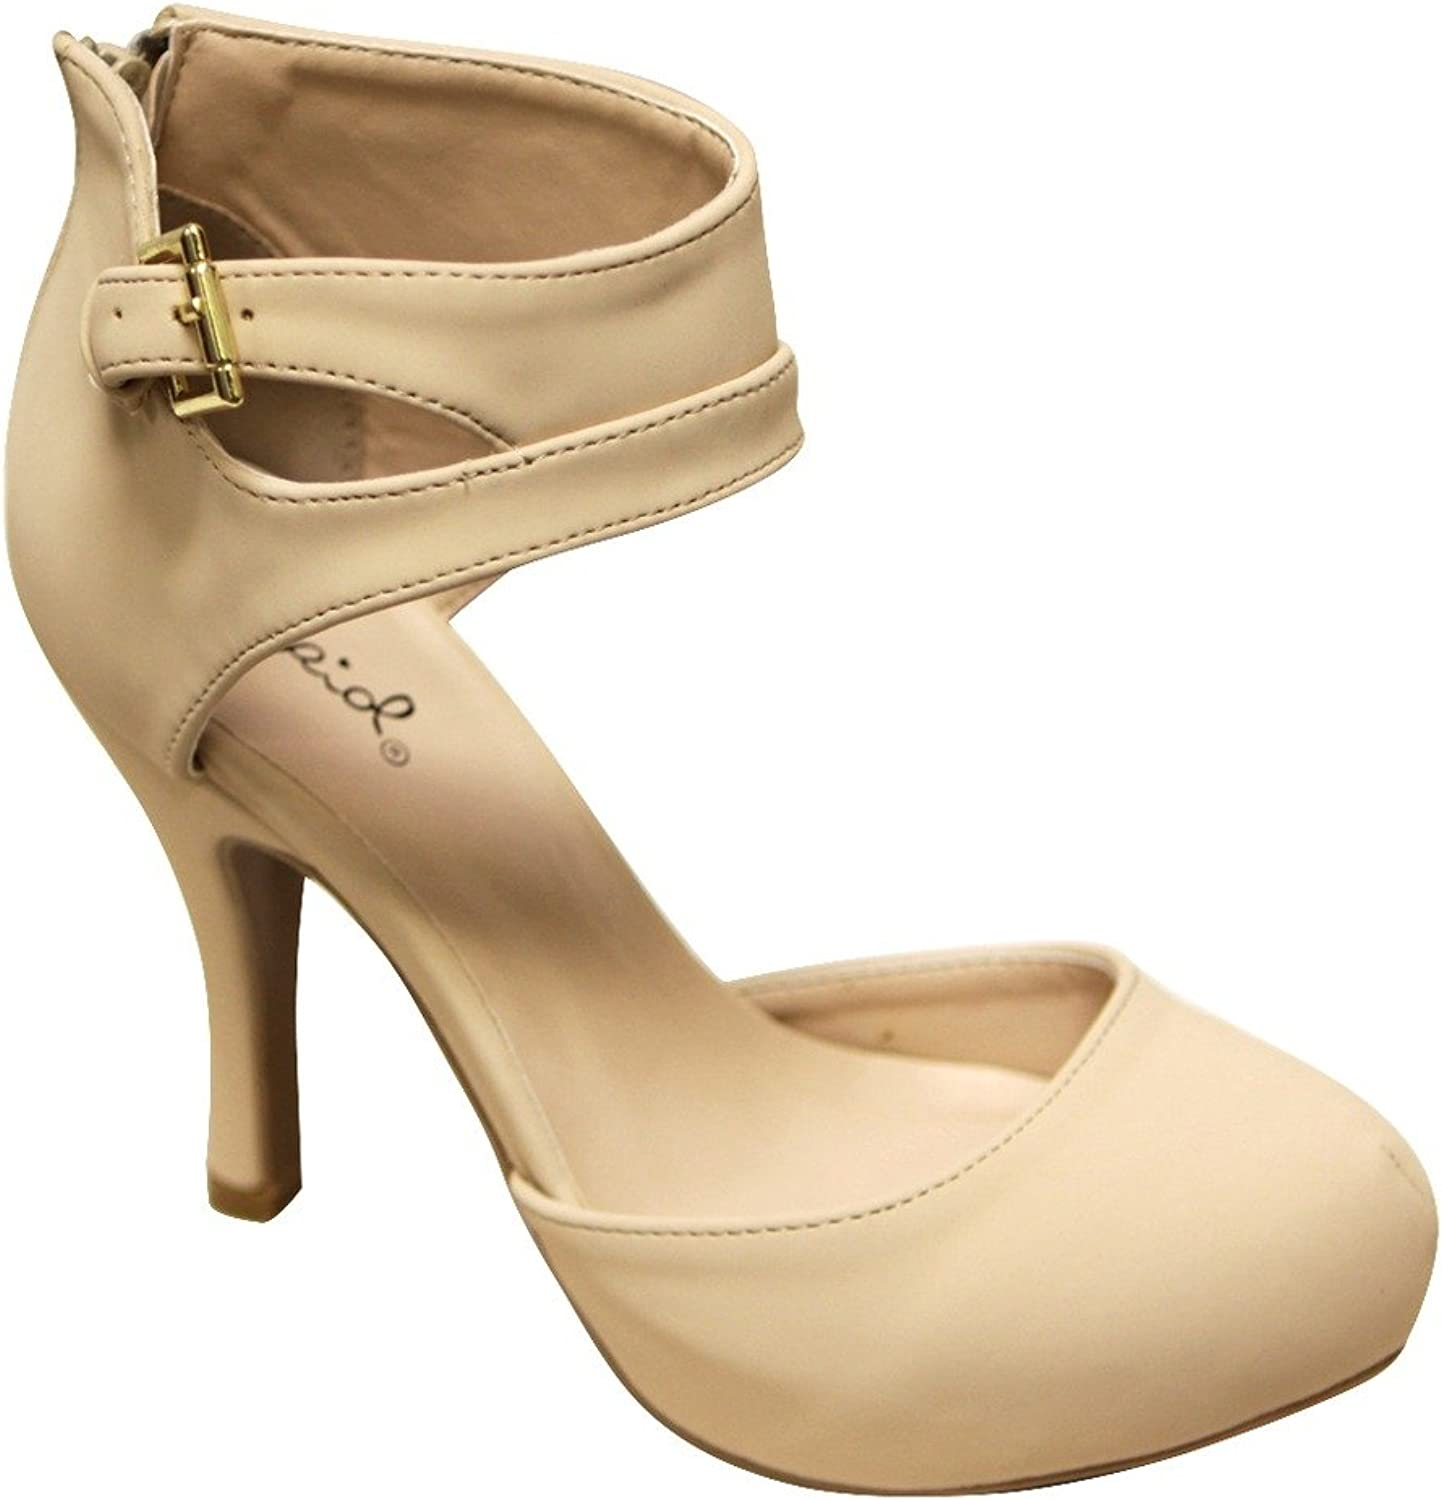 Qupid Trench-244 Women's Round Toe High Heel Zip Closure Buckle Ankle Straps Nubuck shoes